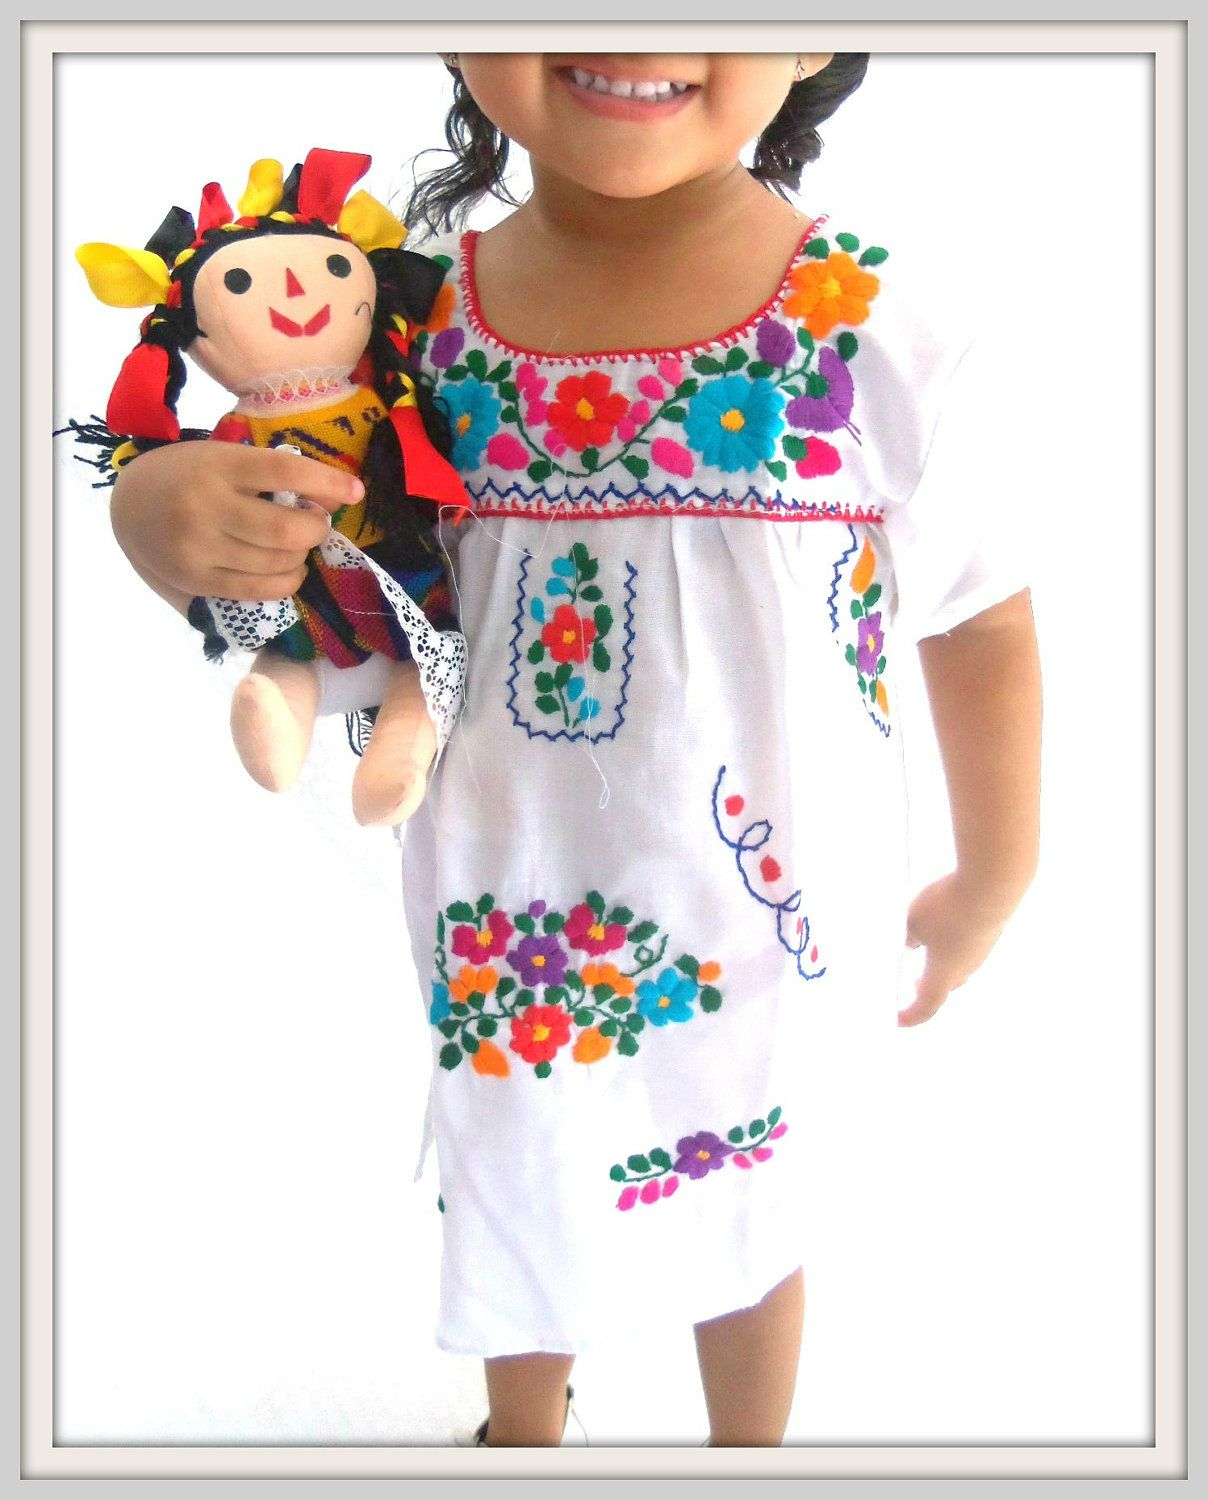 Nubes y Flowers Ethnic Handmade Embroidered Mexican White Baby Tunic Dress.  $35.00, via Etsy